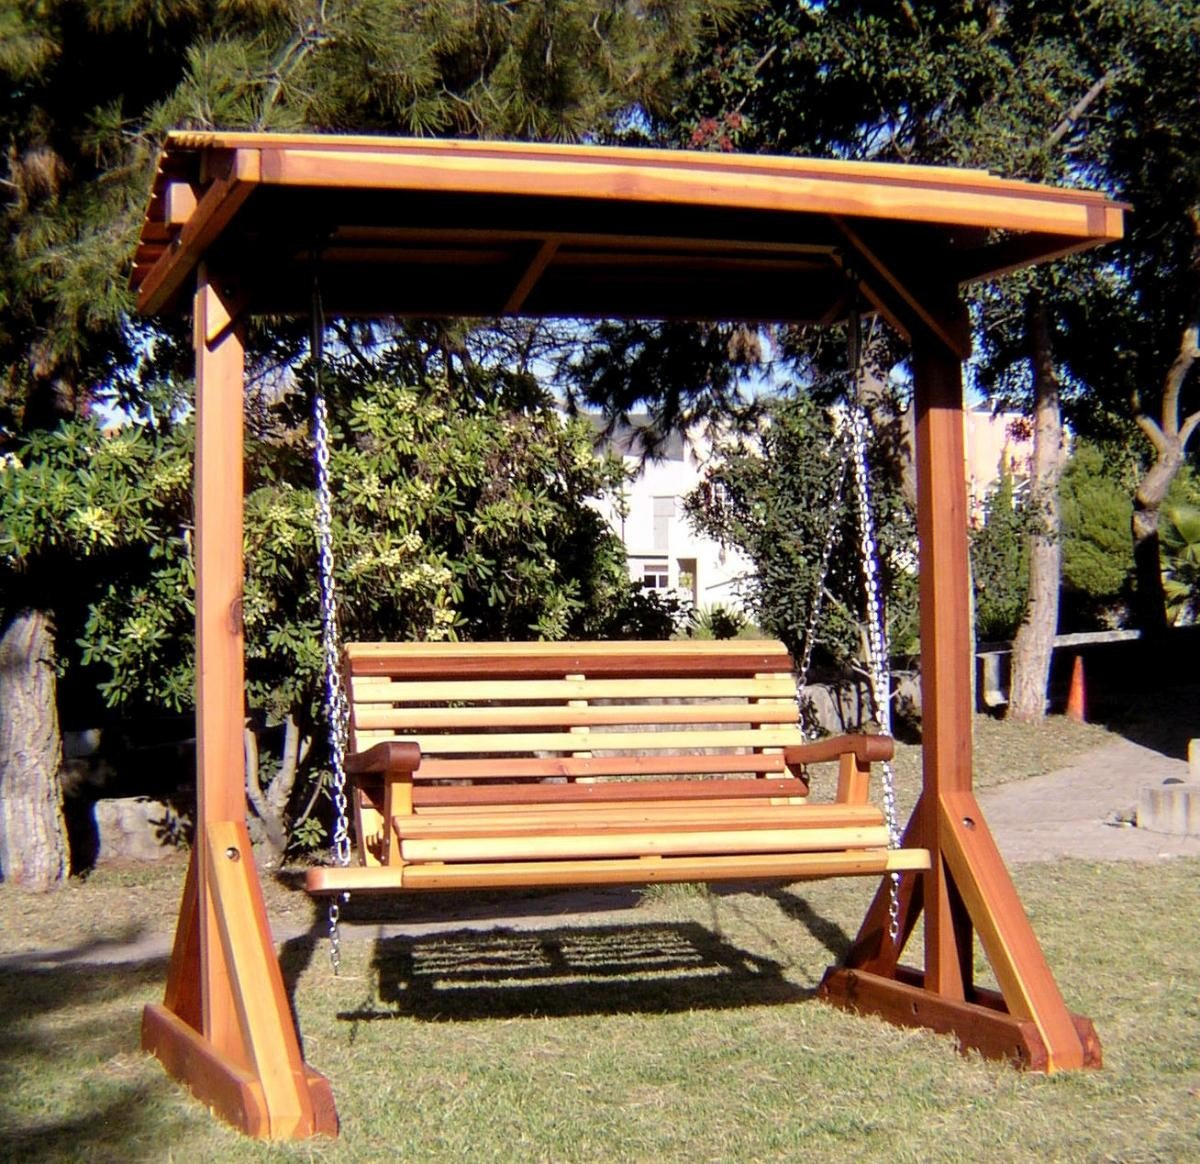 Bench swing sets built to last decades forever redwood - How to build an outdoor wooden playground ...